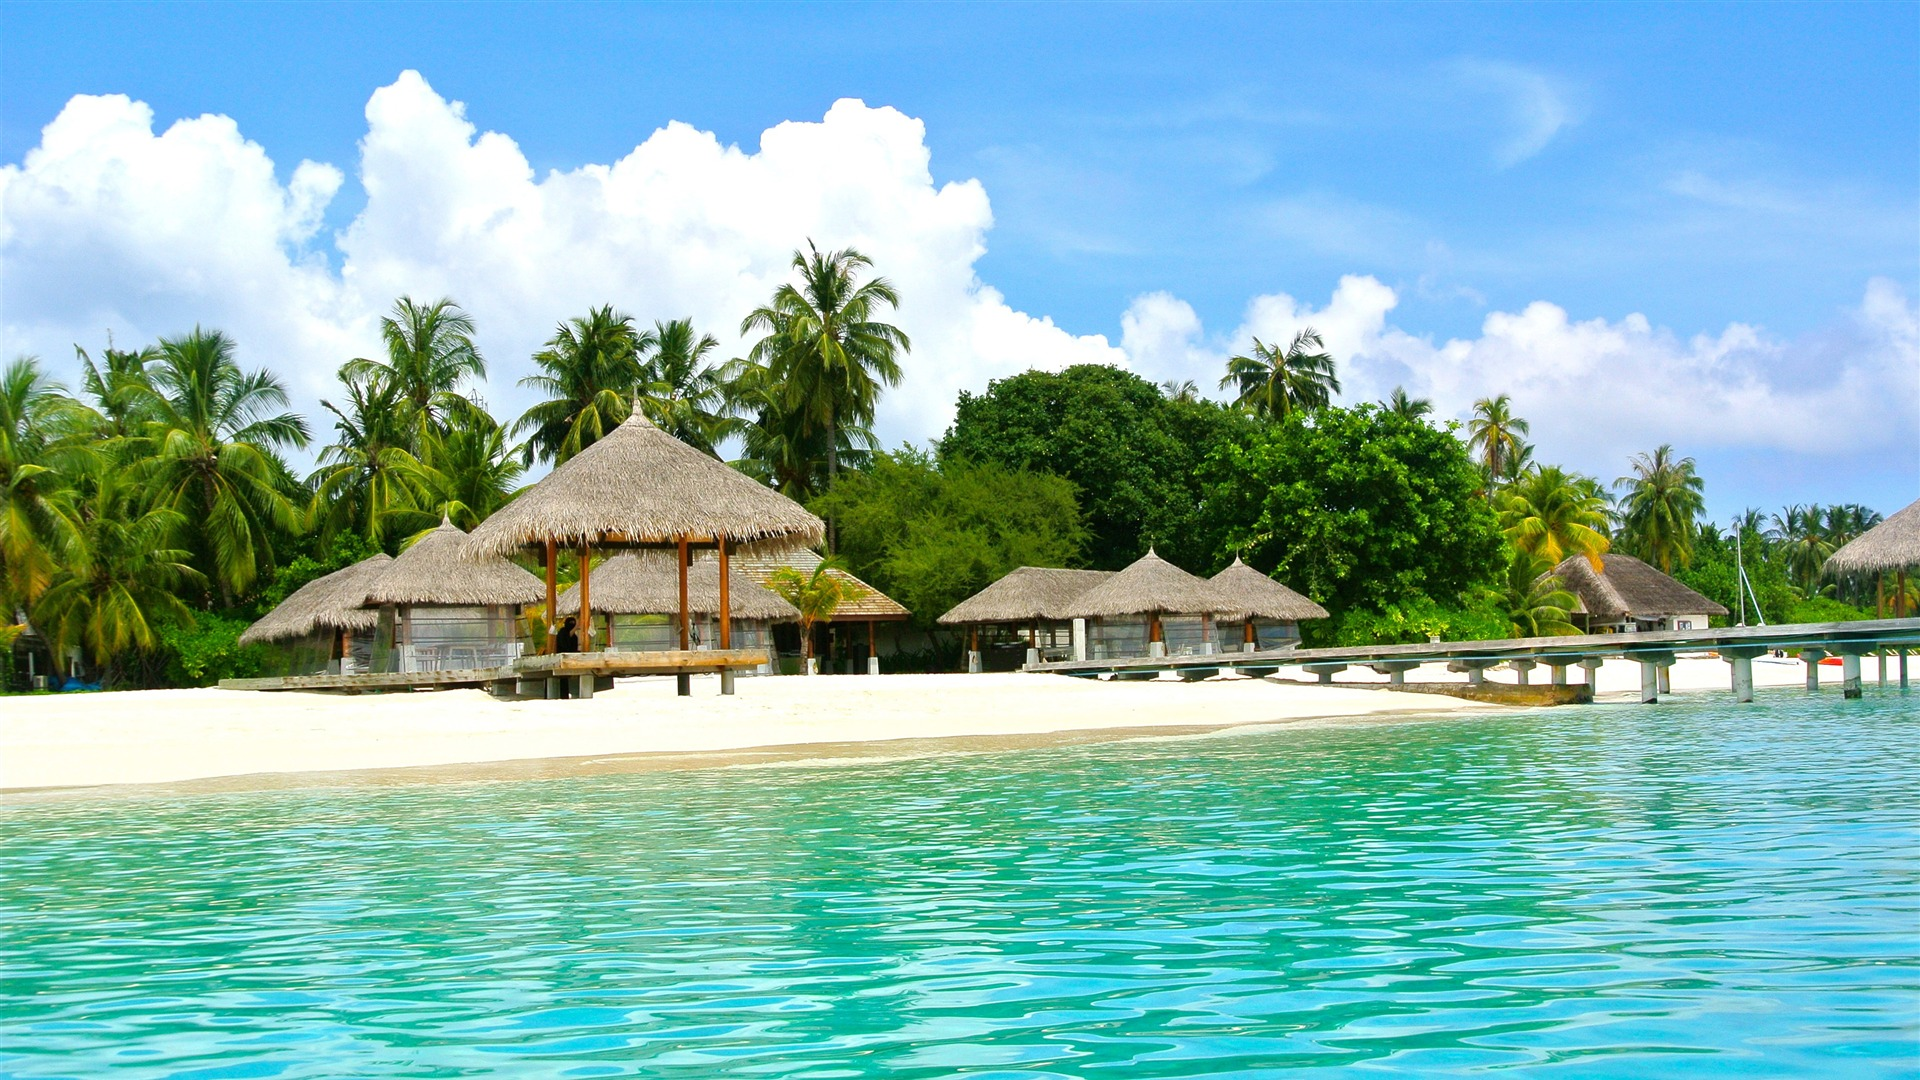 Tropical Ocean Resort Blue Sky Wallpaper 1920x1080